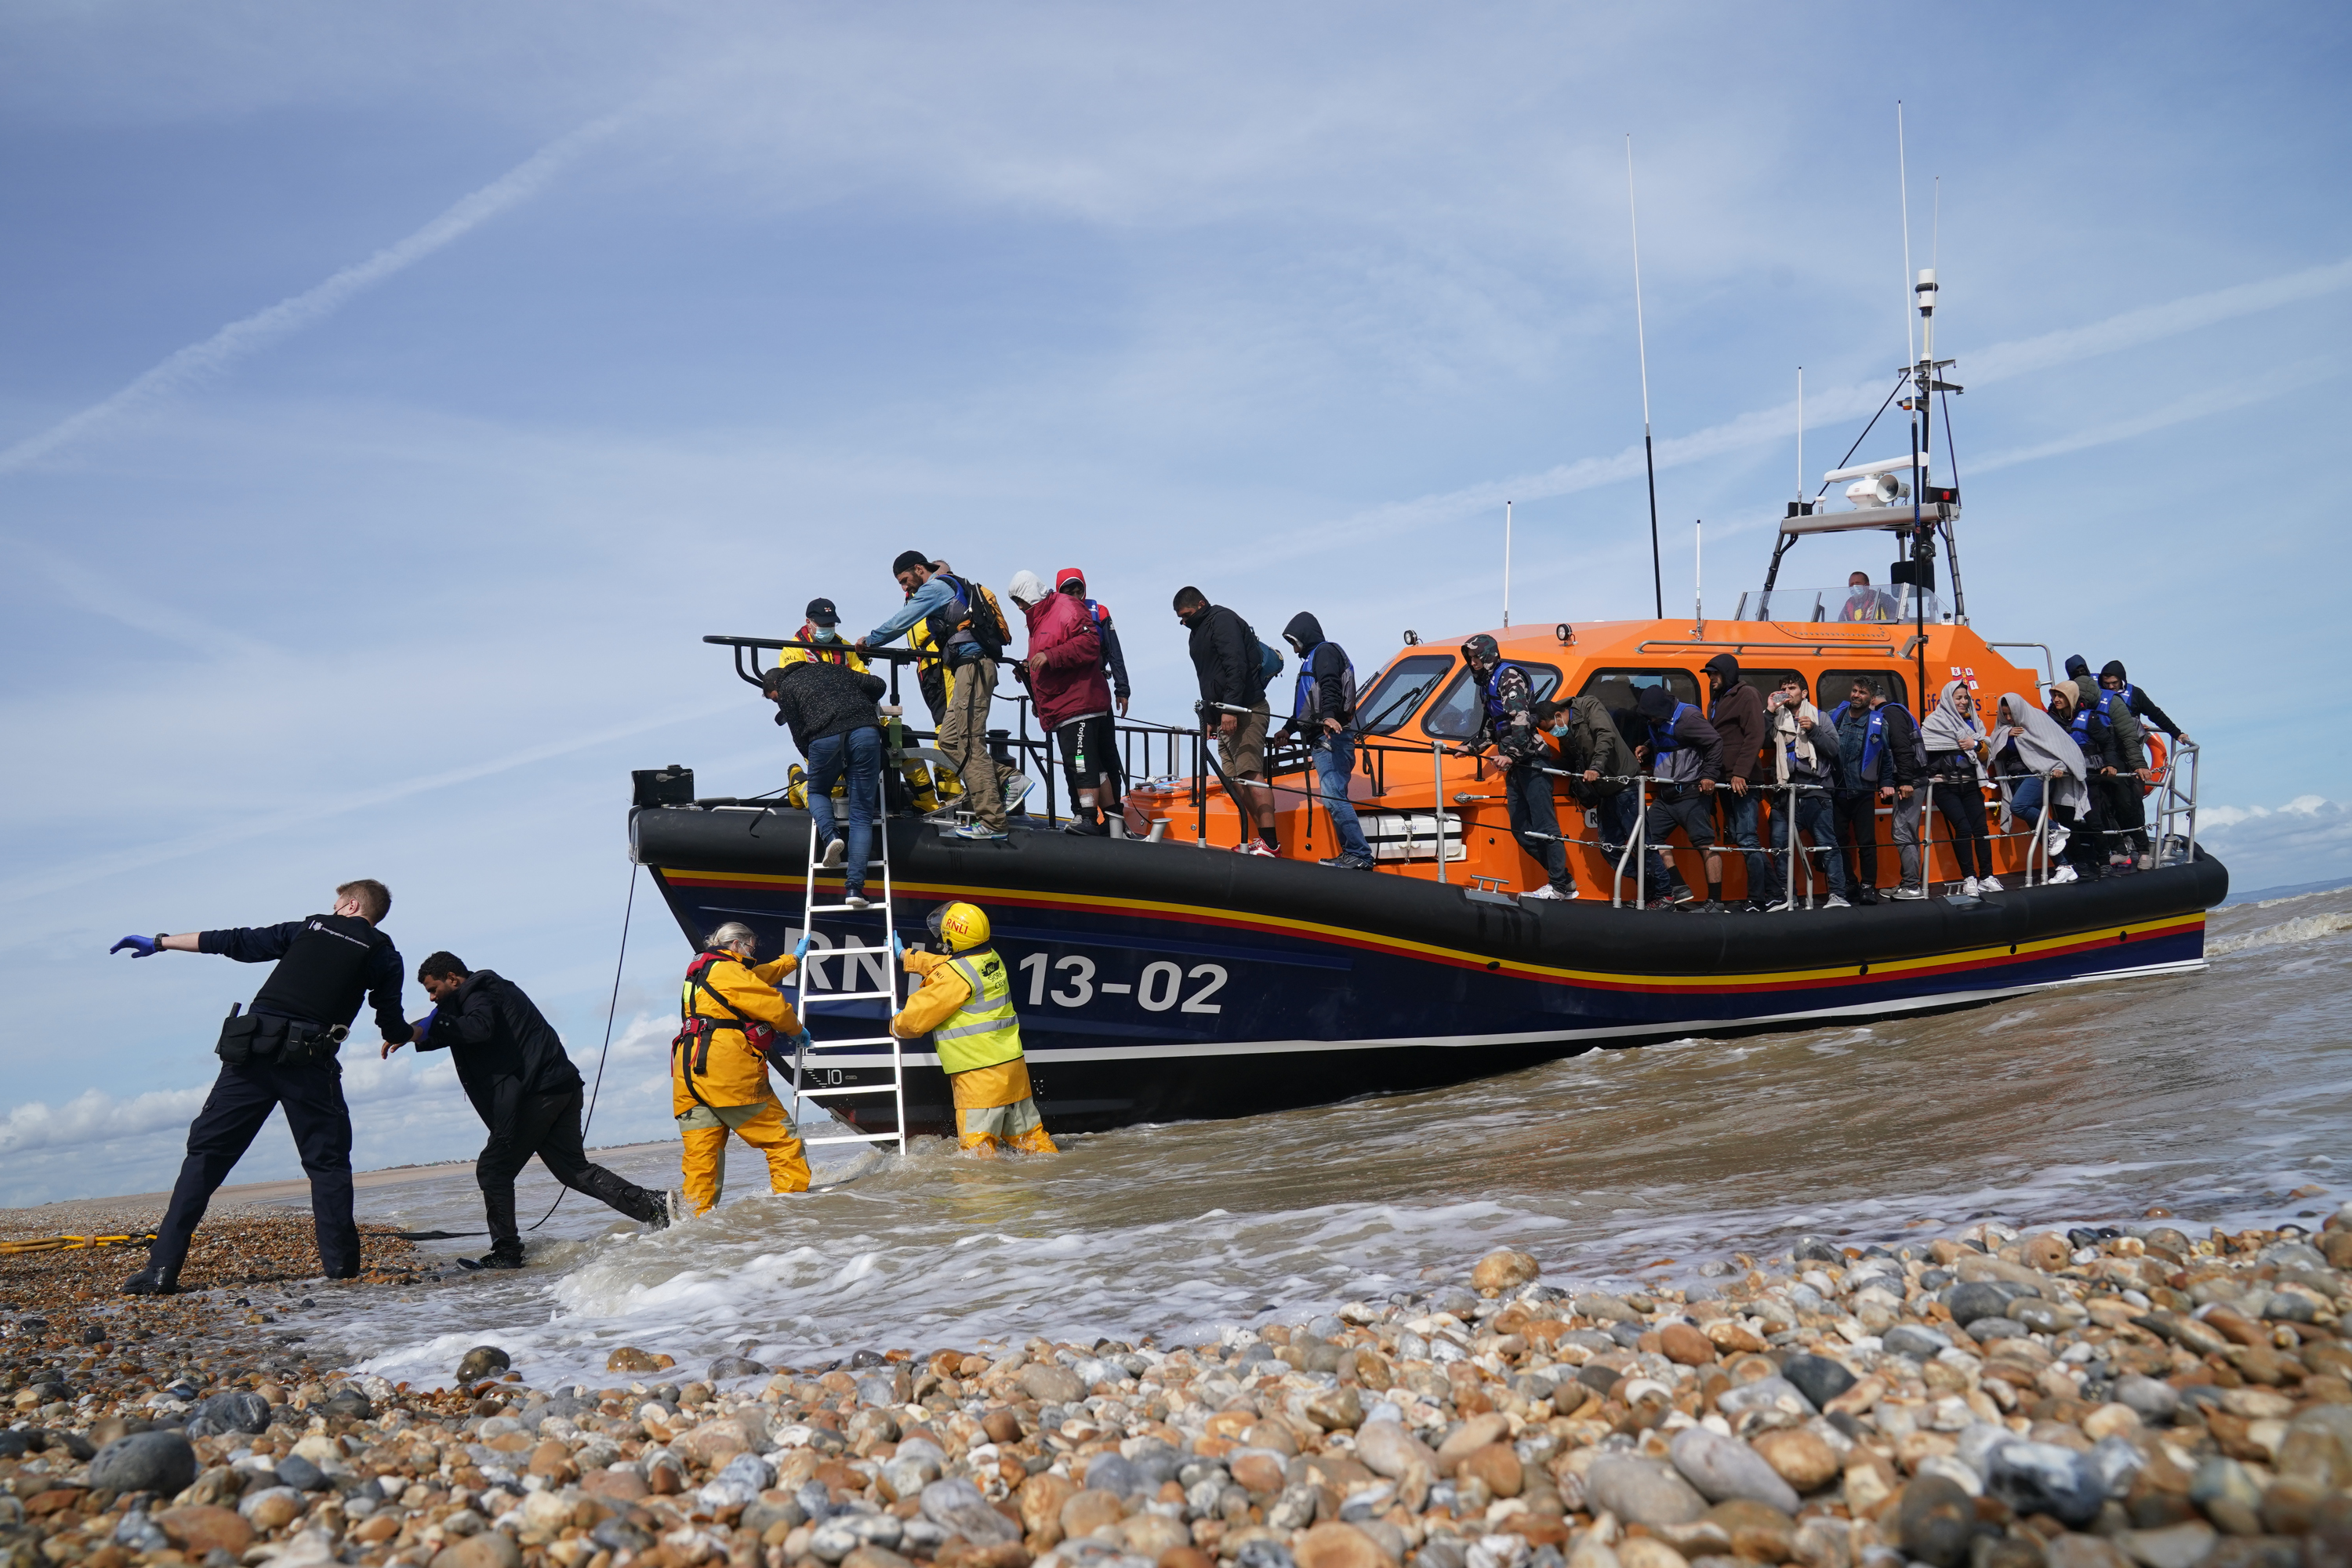 <p>Immigration Enforcement officers and members of the RNLI assist a group of people thought to be migrants from an RNLI lifeboat after they were brought into Dungeness, Kent, by an RNLI lifeboat following a small boat incident in the Channel. Picture date: Monday September 13, 2021.</p>